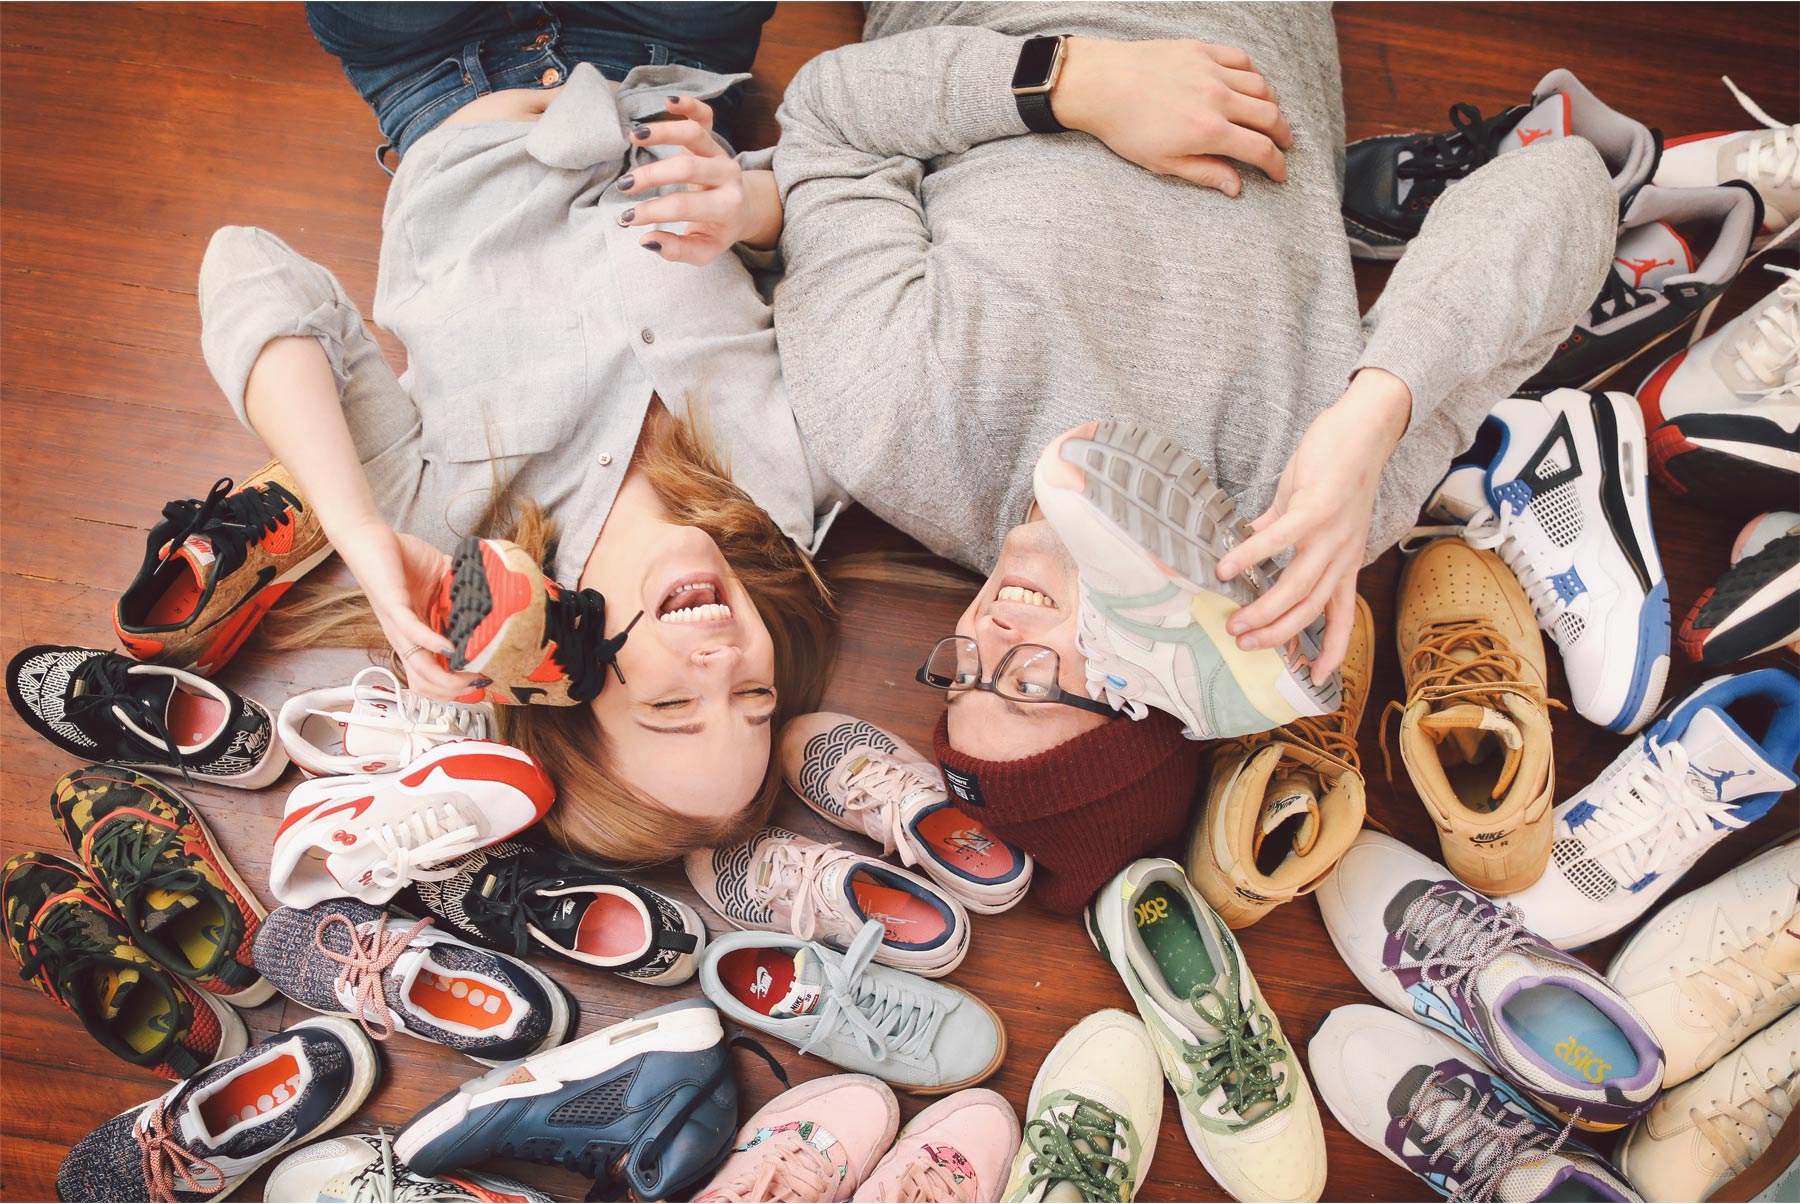 05-Vick-Photography-Fly-to-You-Engagement-Session-Denver-Colorado-Home-Shoe-Collection-Danielle-and-Tom.jpg